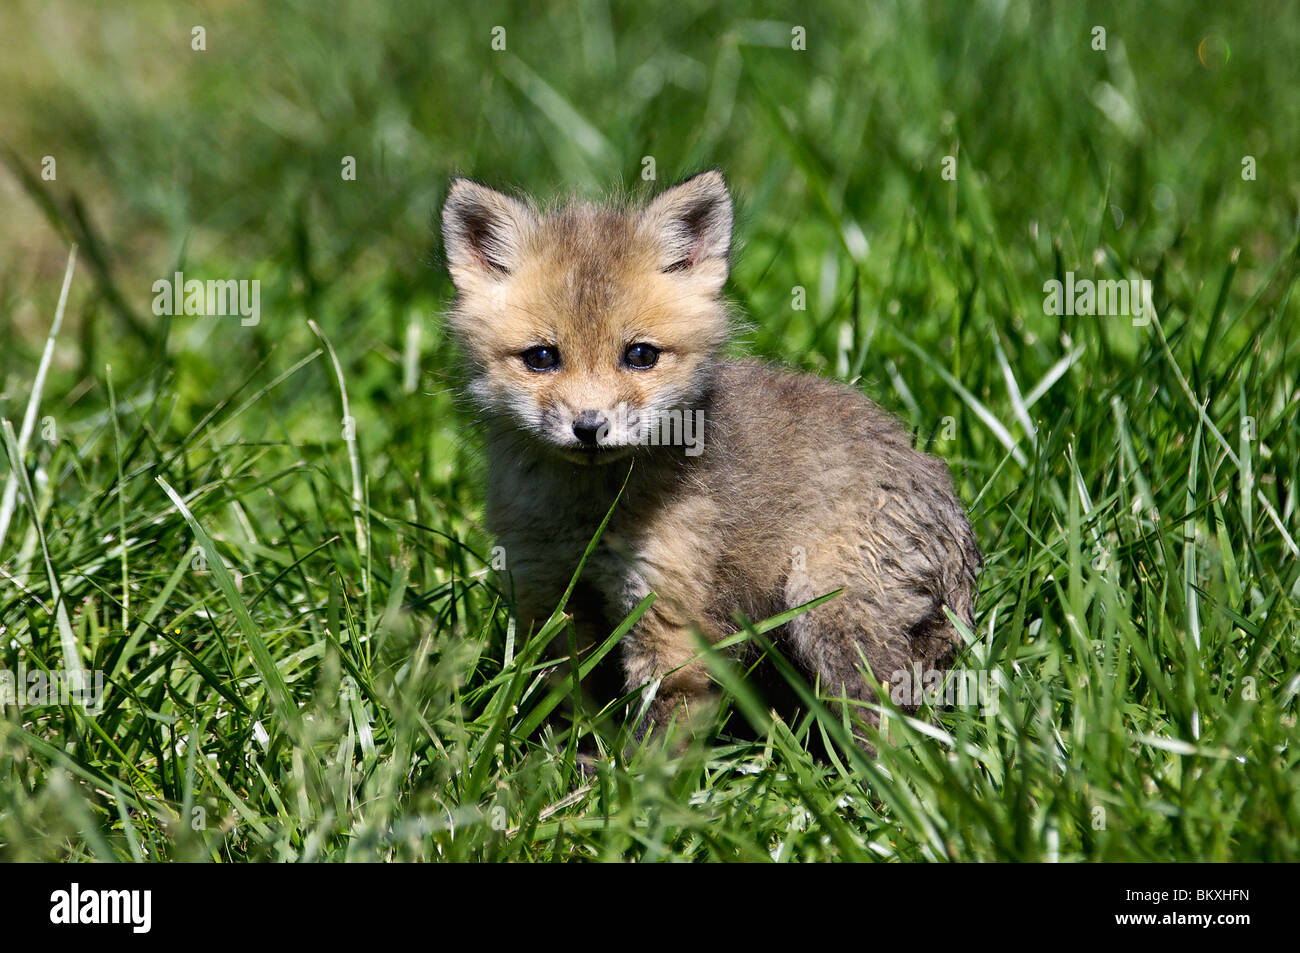 Baby Red Fox in Floyd County, Indiana Stock Photo, Royalty ...  Baby Red Fox in...